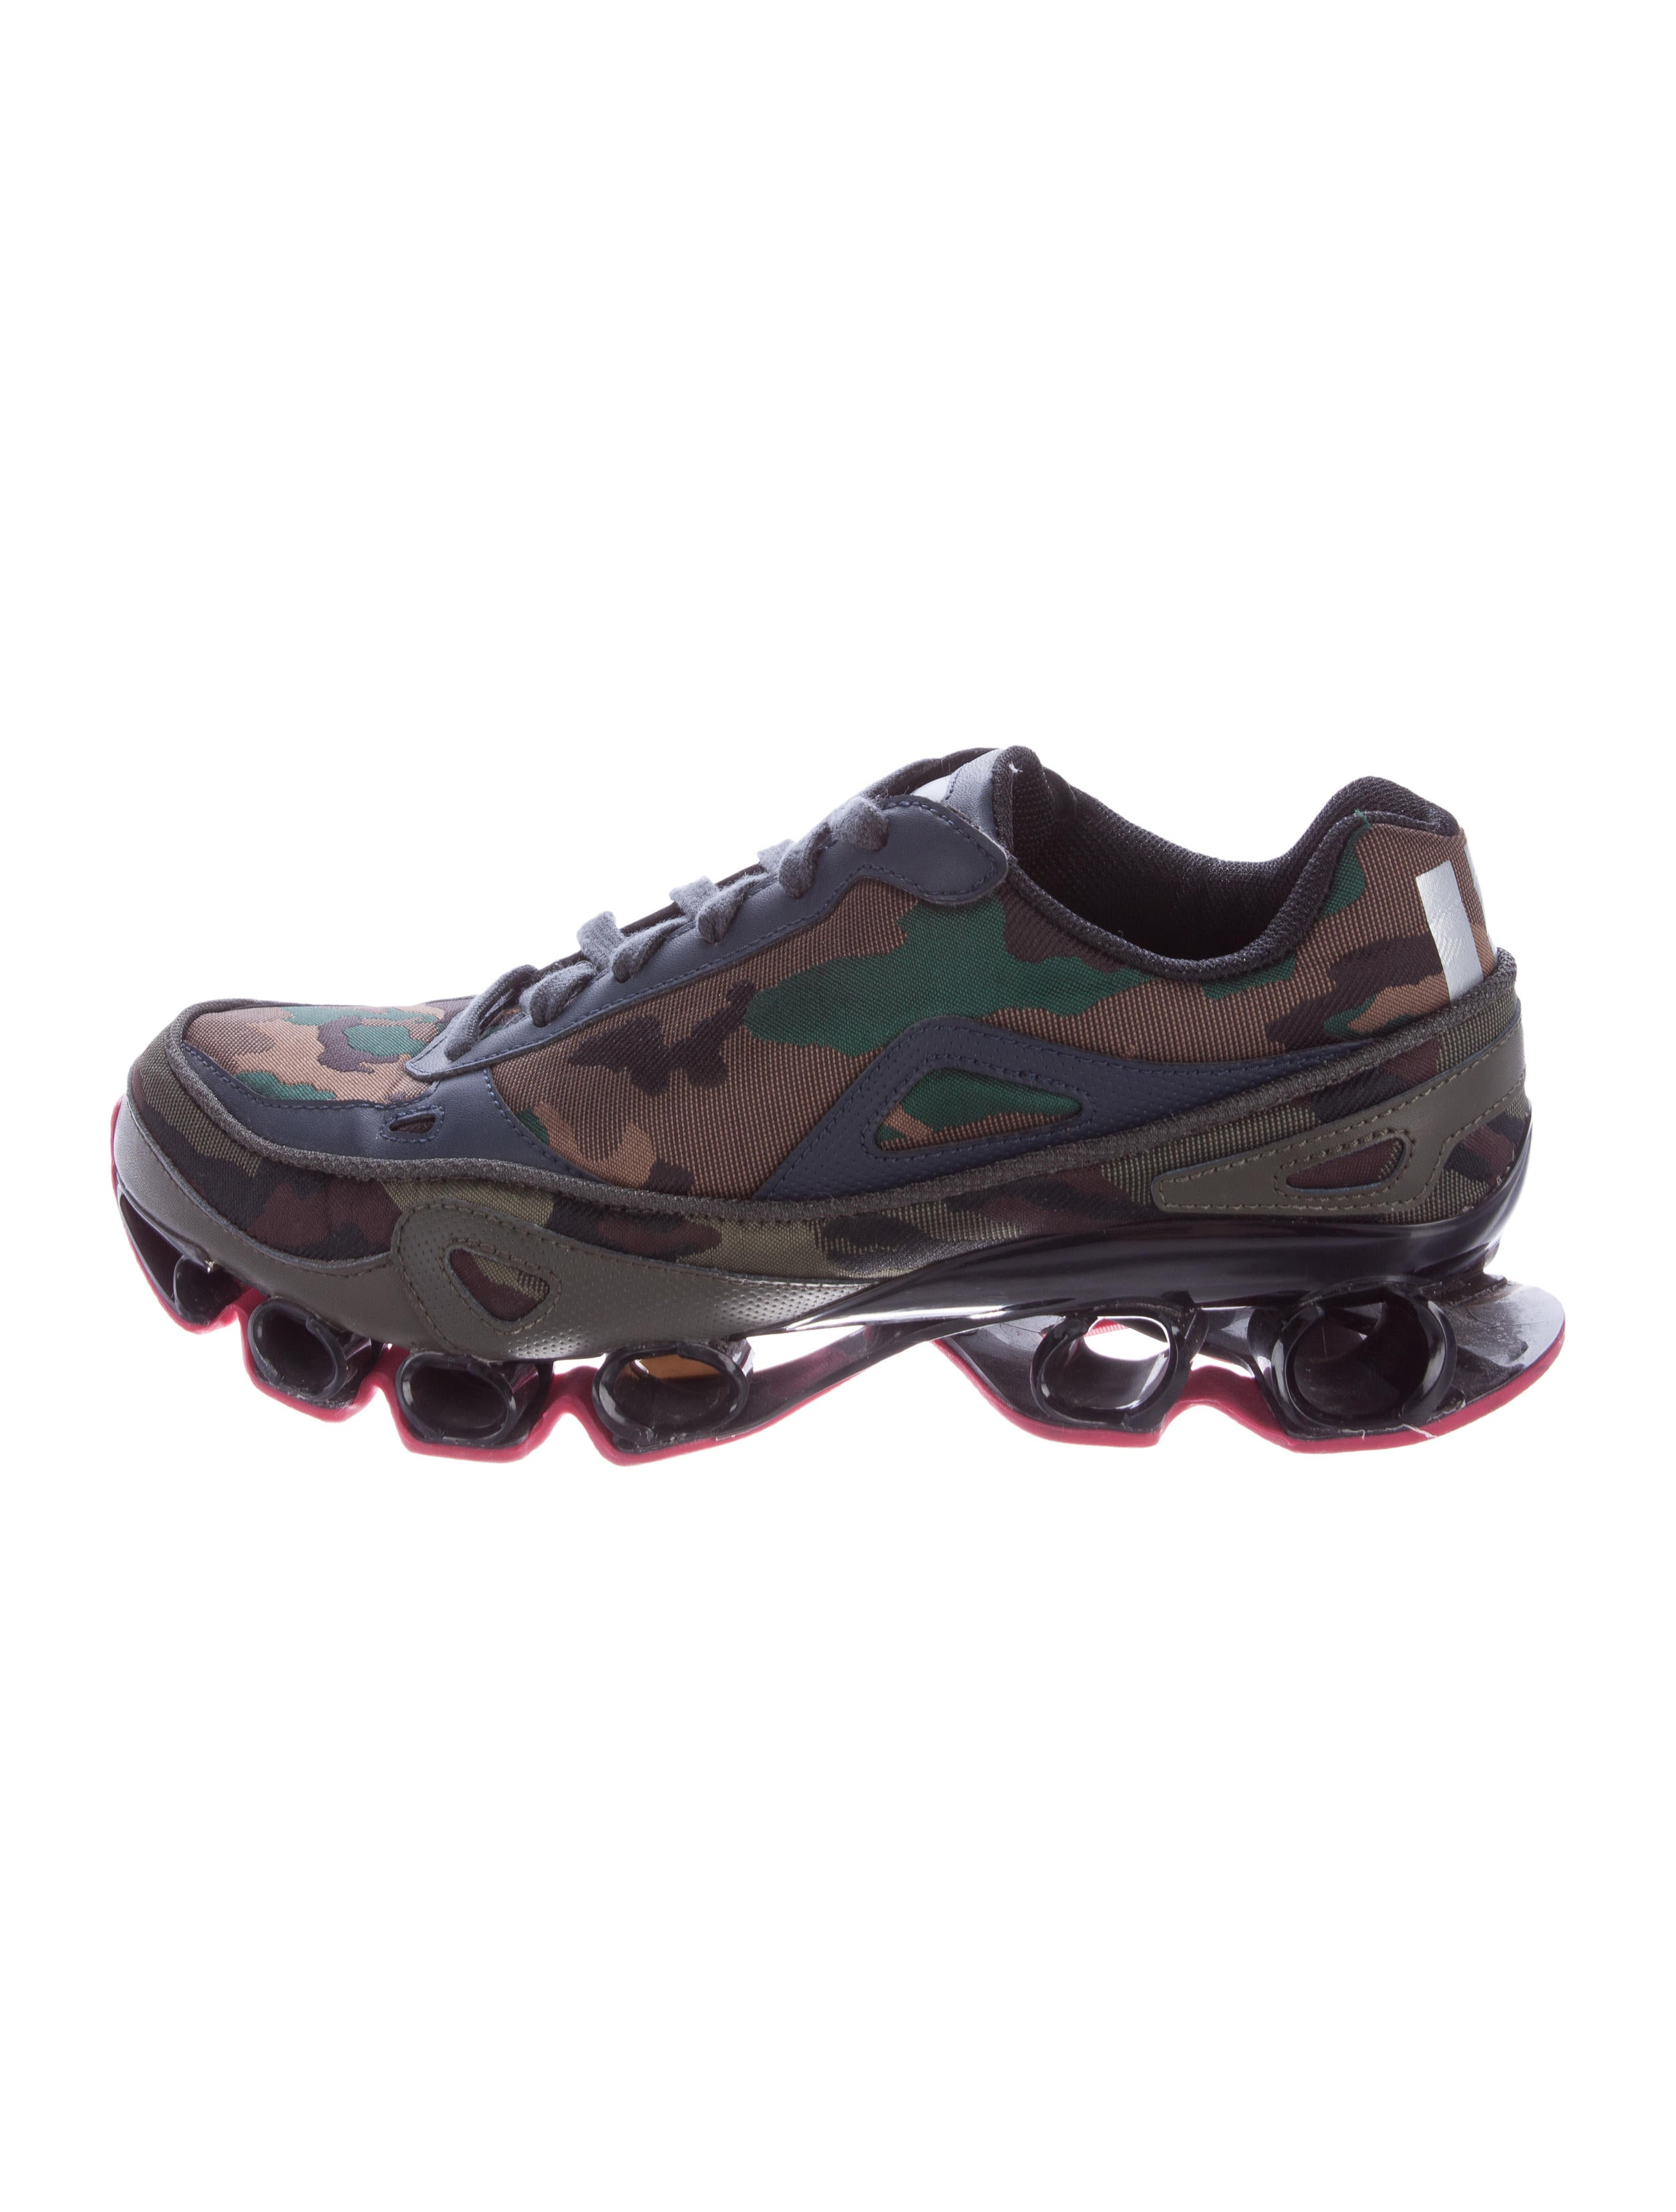 1c7c96b22 Raf Simons x adidas Raf Simons x Adidas Bounce Camouflage Sneakers ...